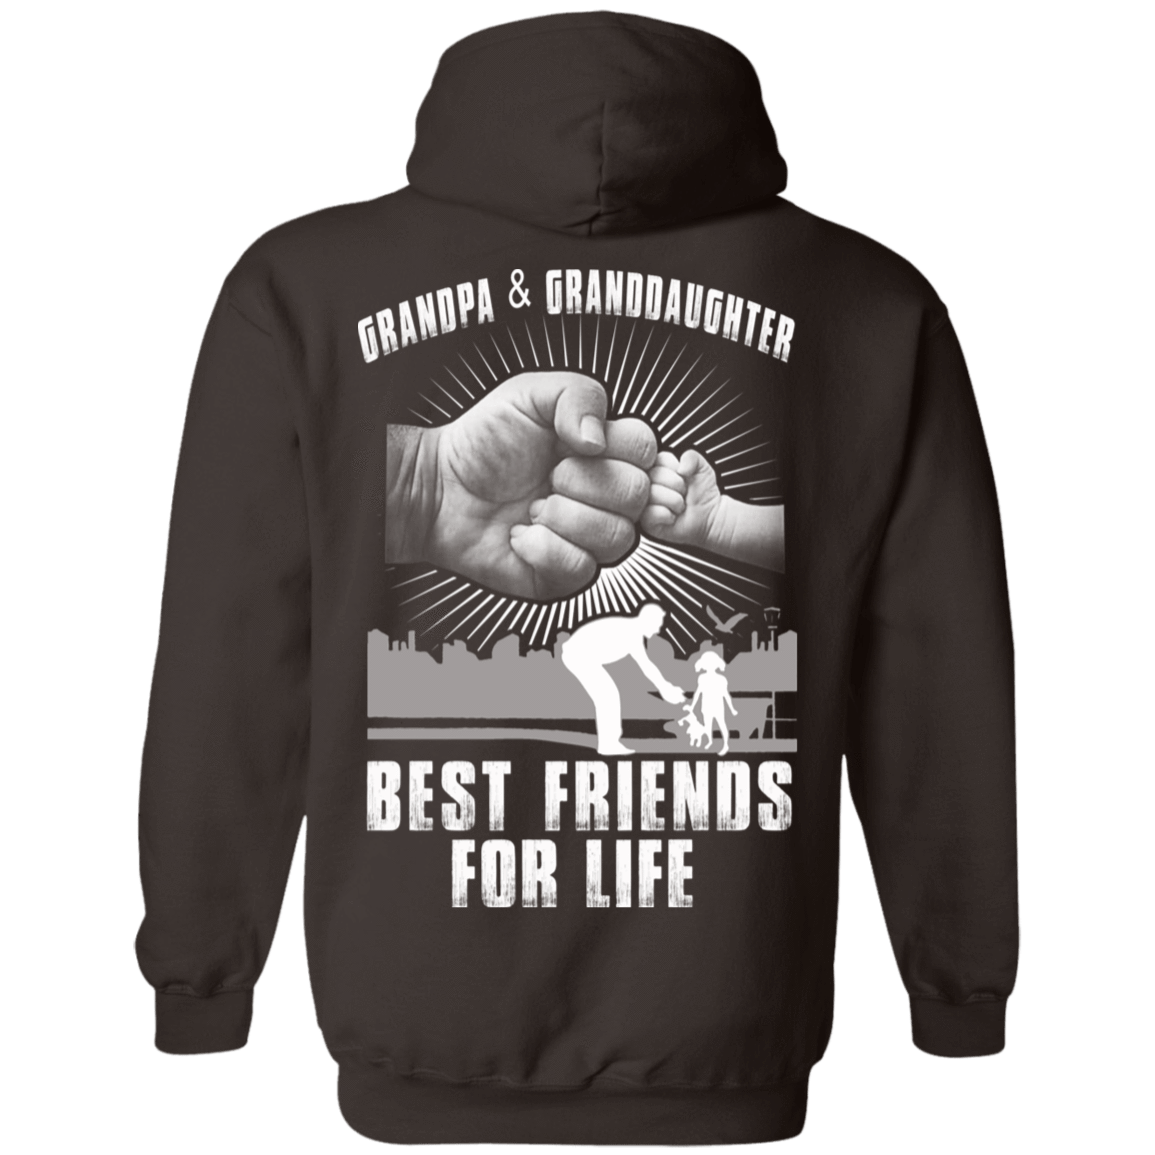 Grandpa And Granddaughter Best Friends For Life 541-4752-71996241-23095 - Tee Ript